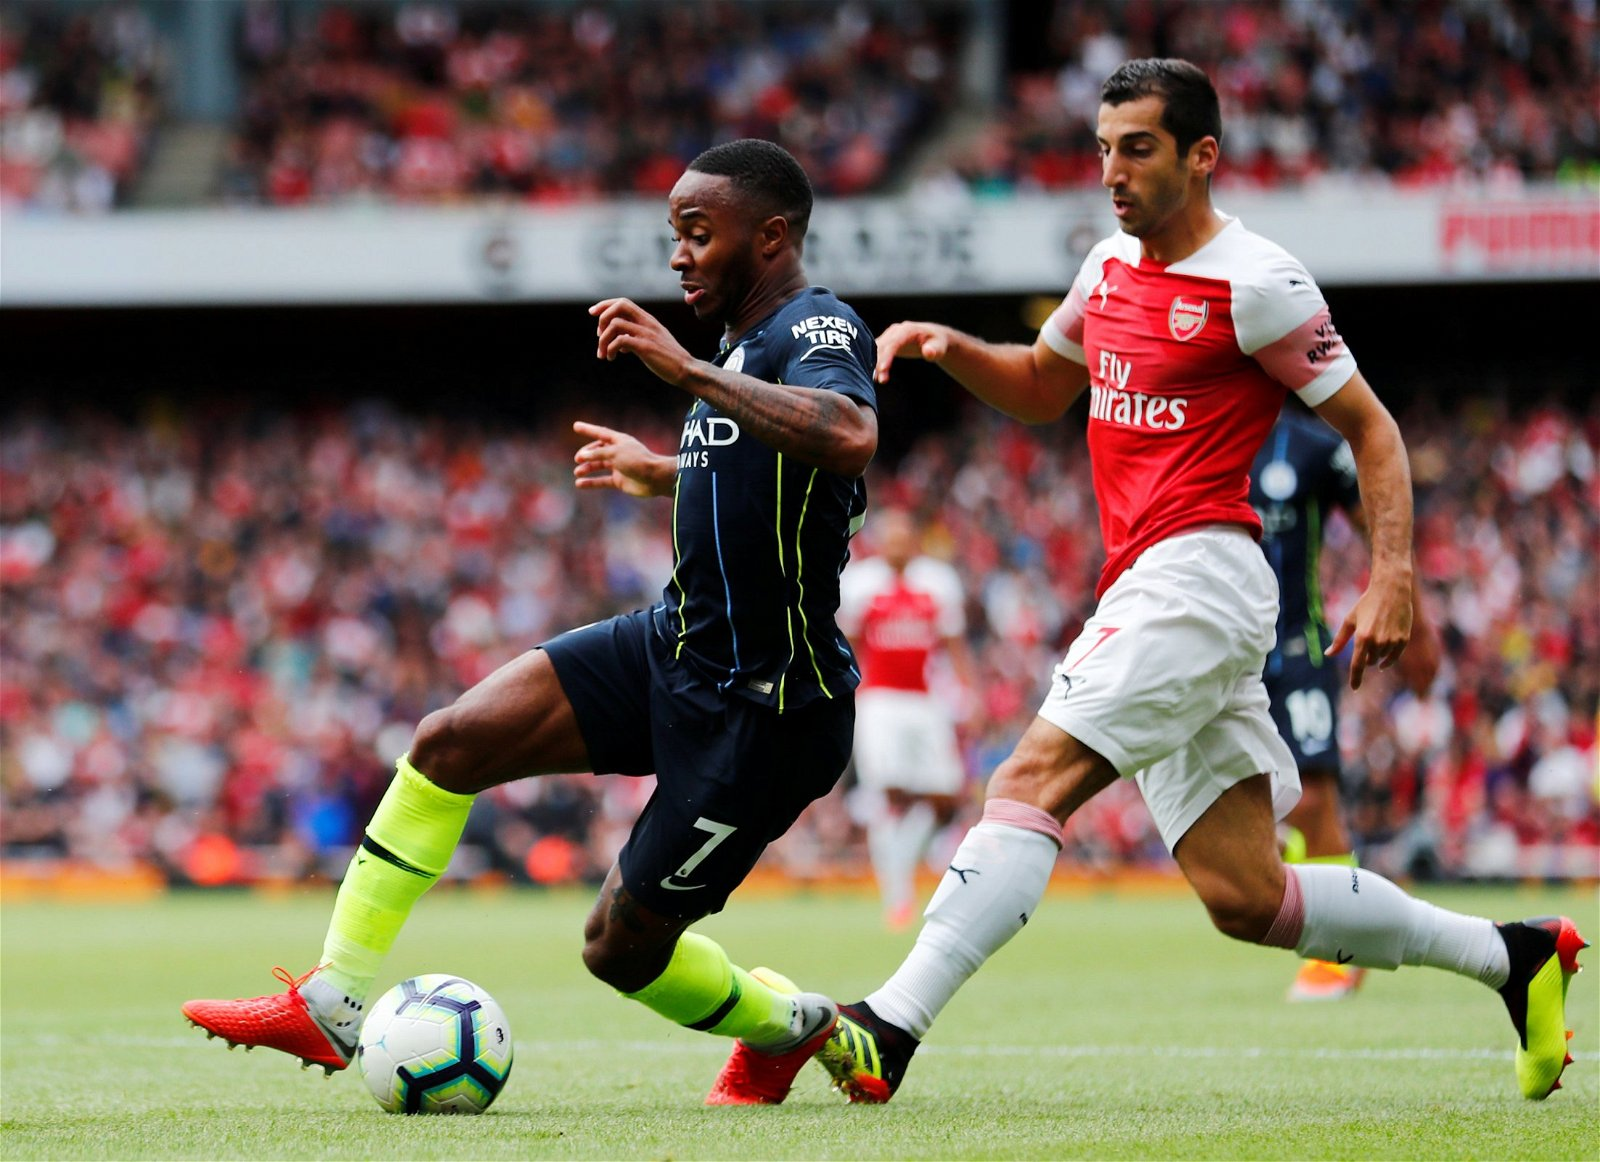 Henrikh Mkhitaryan challenges Raheem Sterling for the ball